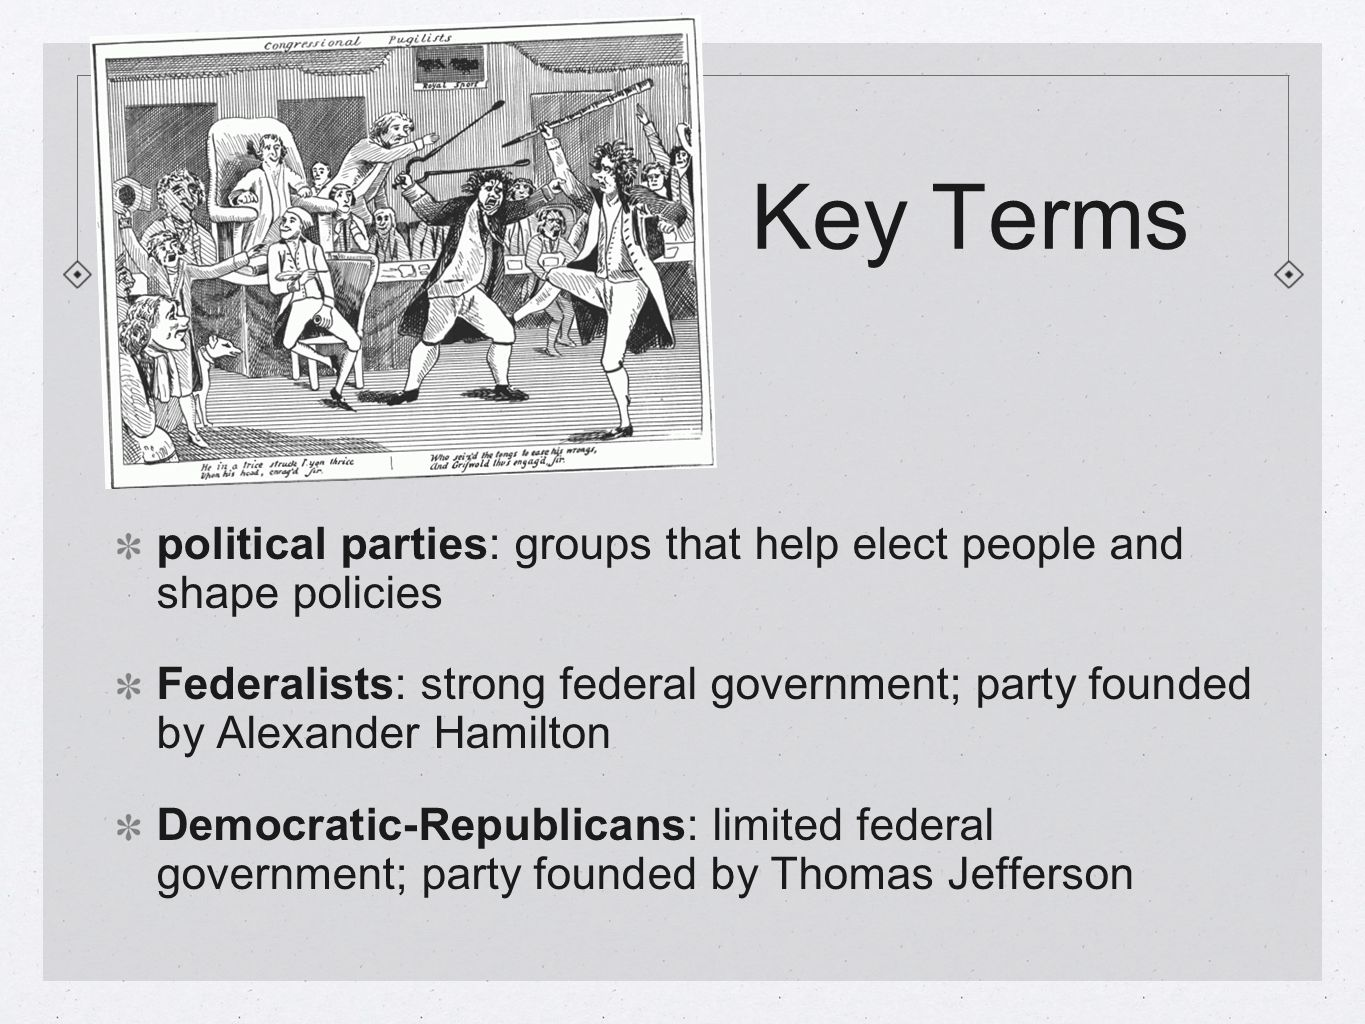 Key Terms political parties: groups that help elect people and shape policies Federalists: strong federal government; party founded by Alexander Hamilton Democratic-Republicans: limited federal government; party founded by Thomas Jefferson